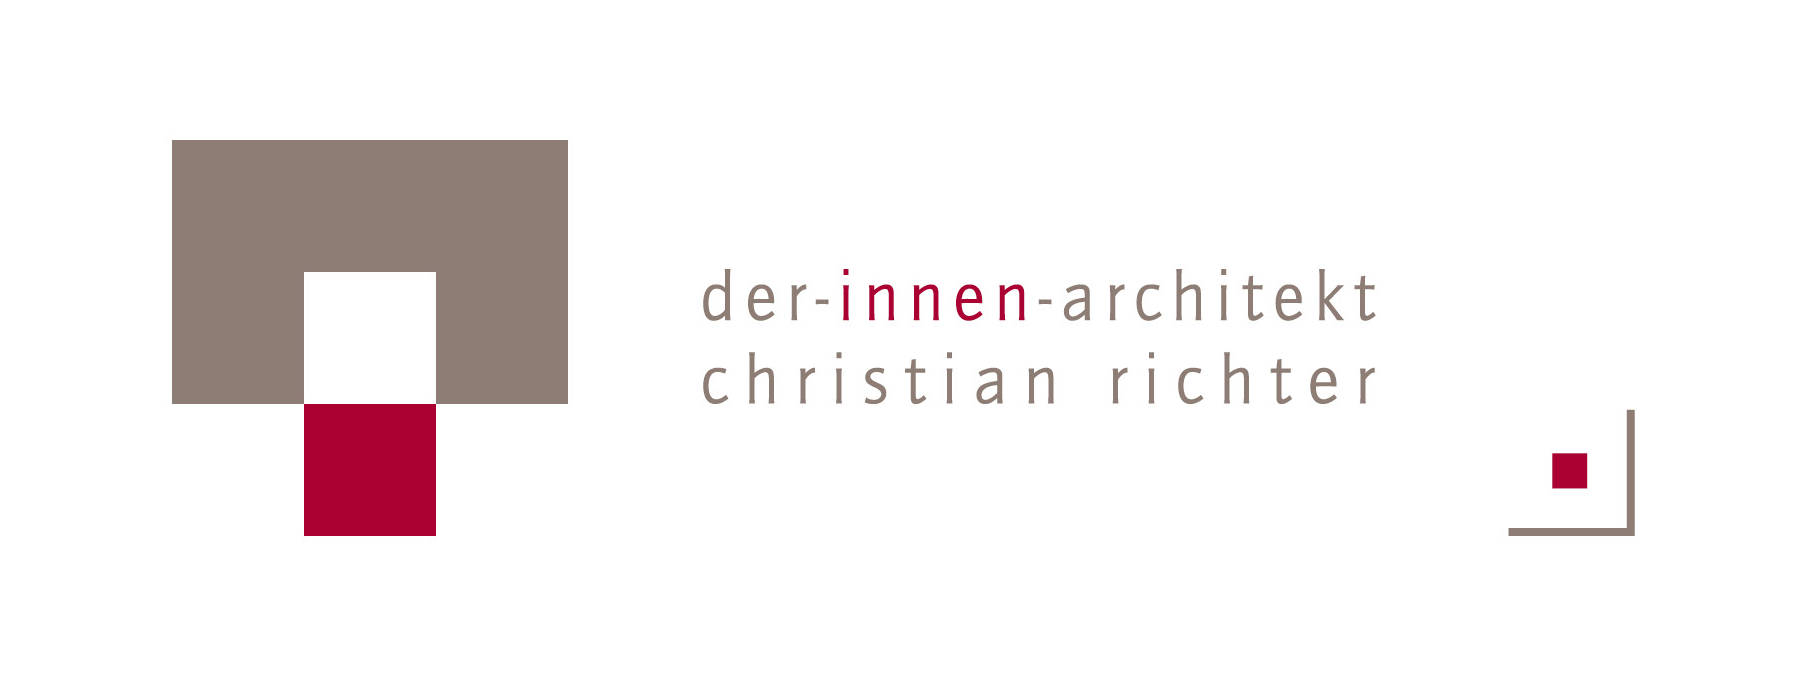 Innenarchitekt Richter